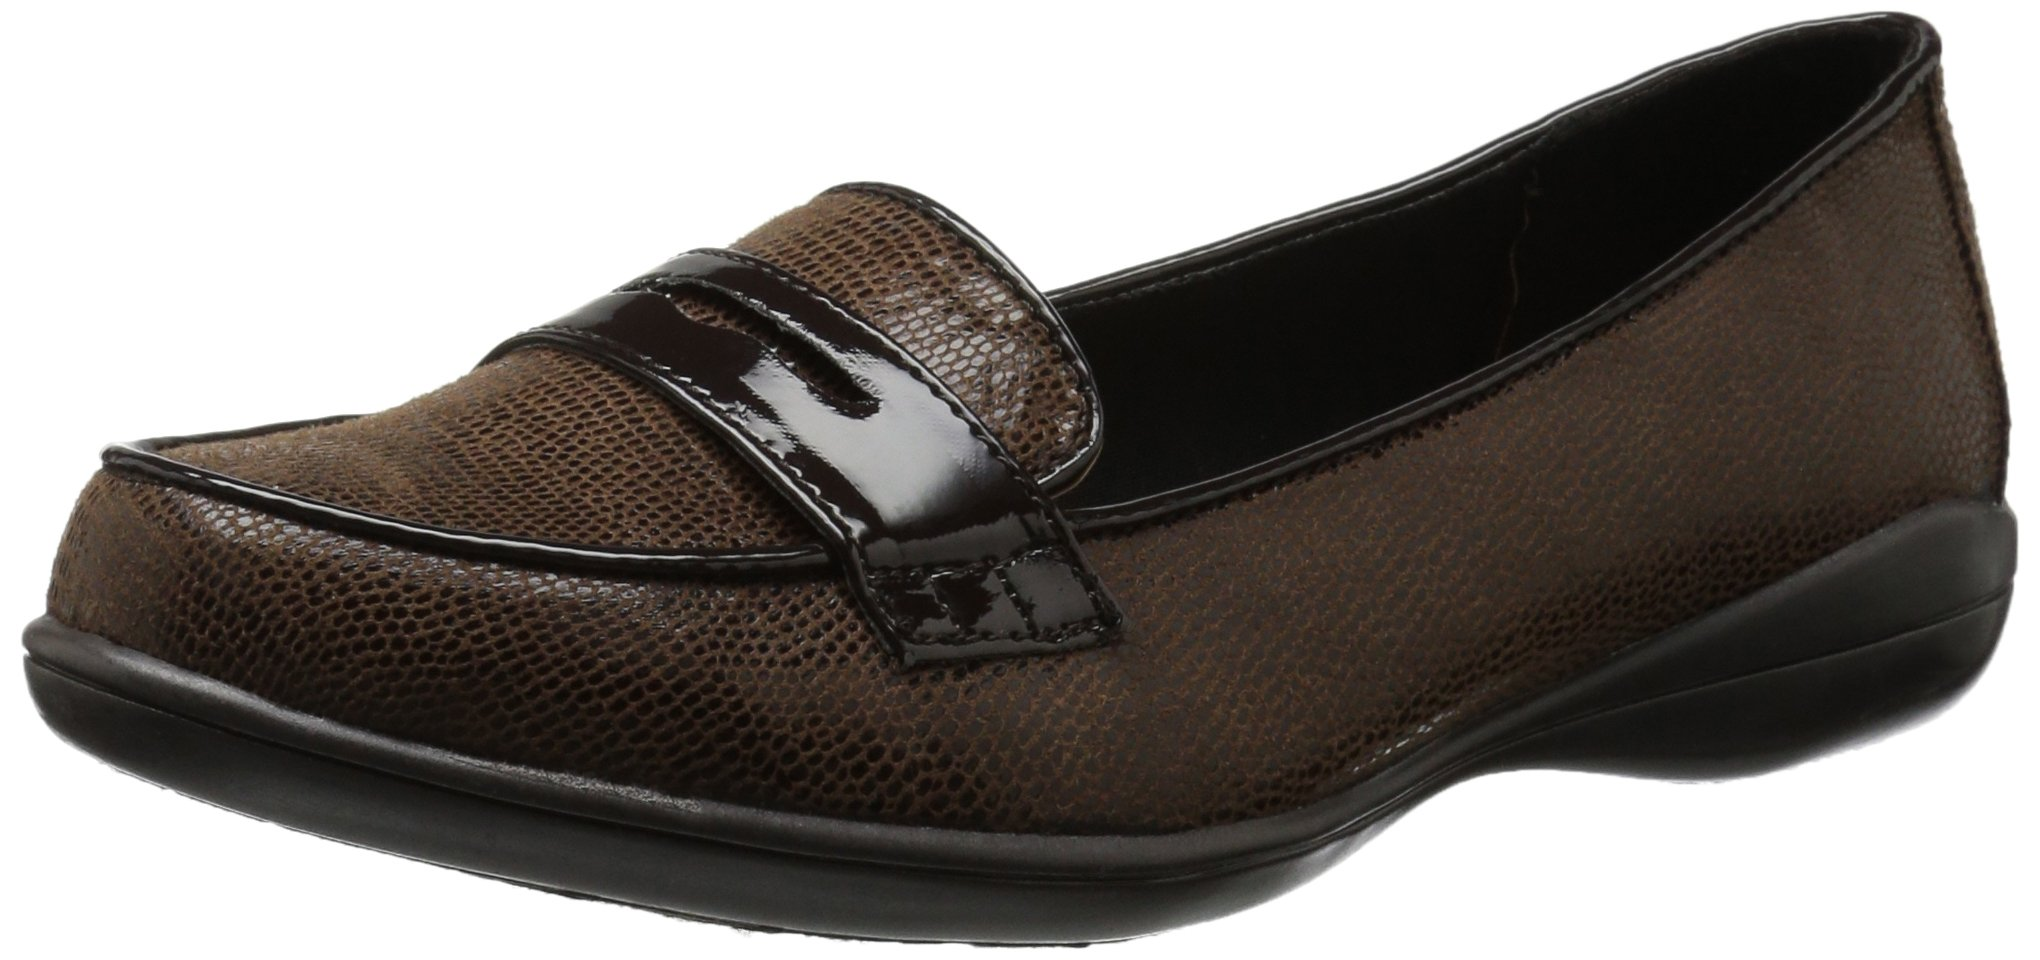 Soft Style by Hush Puppies Women's Daly Penny Loafer, Dark Brown Lizard/Patent, 8.5 W US